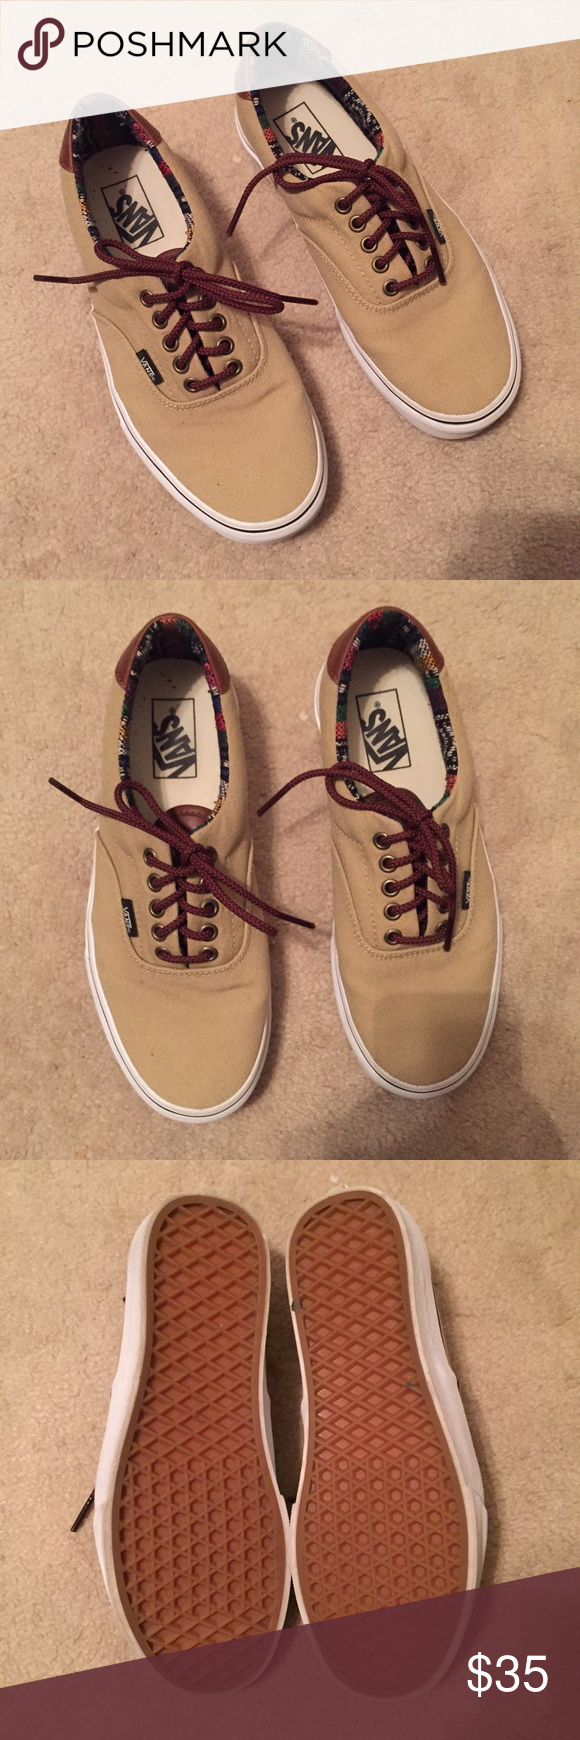 Women's Size 9 vans Perfect condition, only worn twice. Women's size 9. Men's size 7.5. Vans Shoes